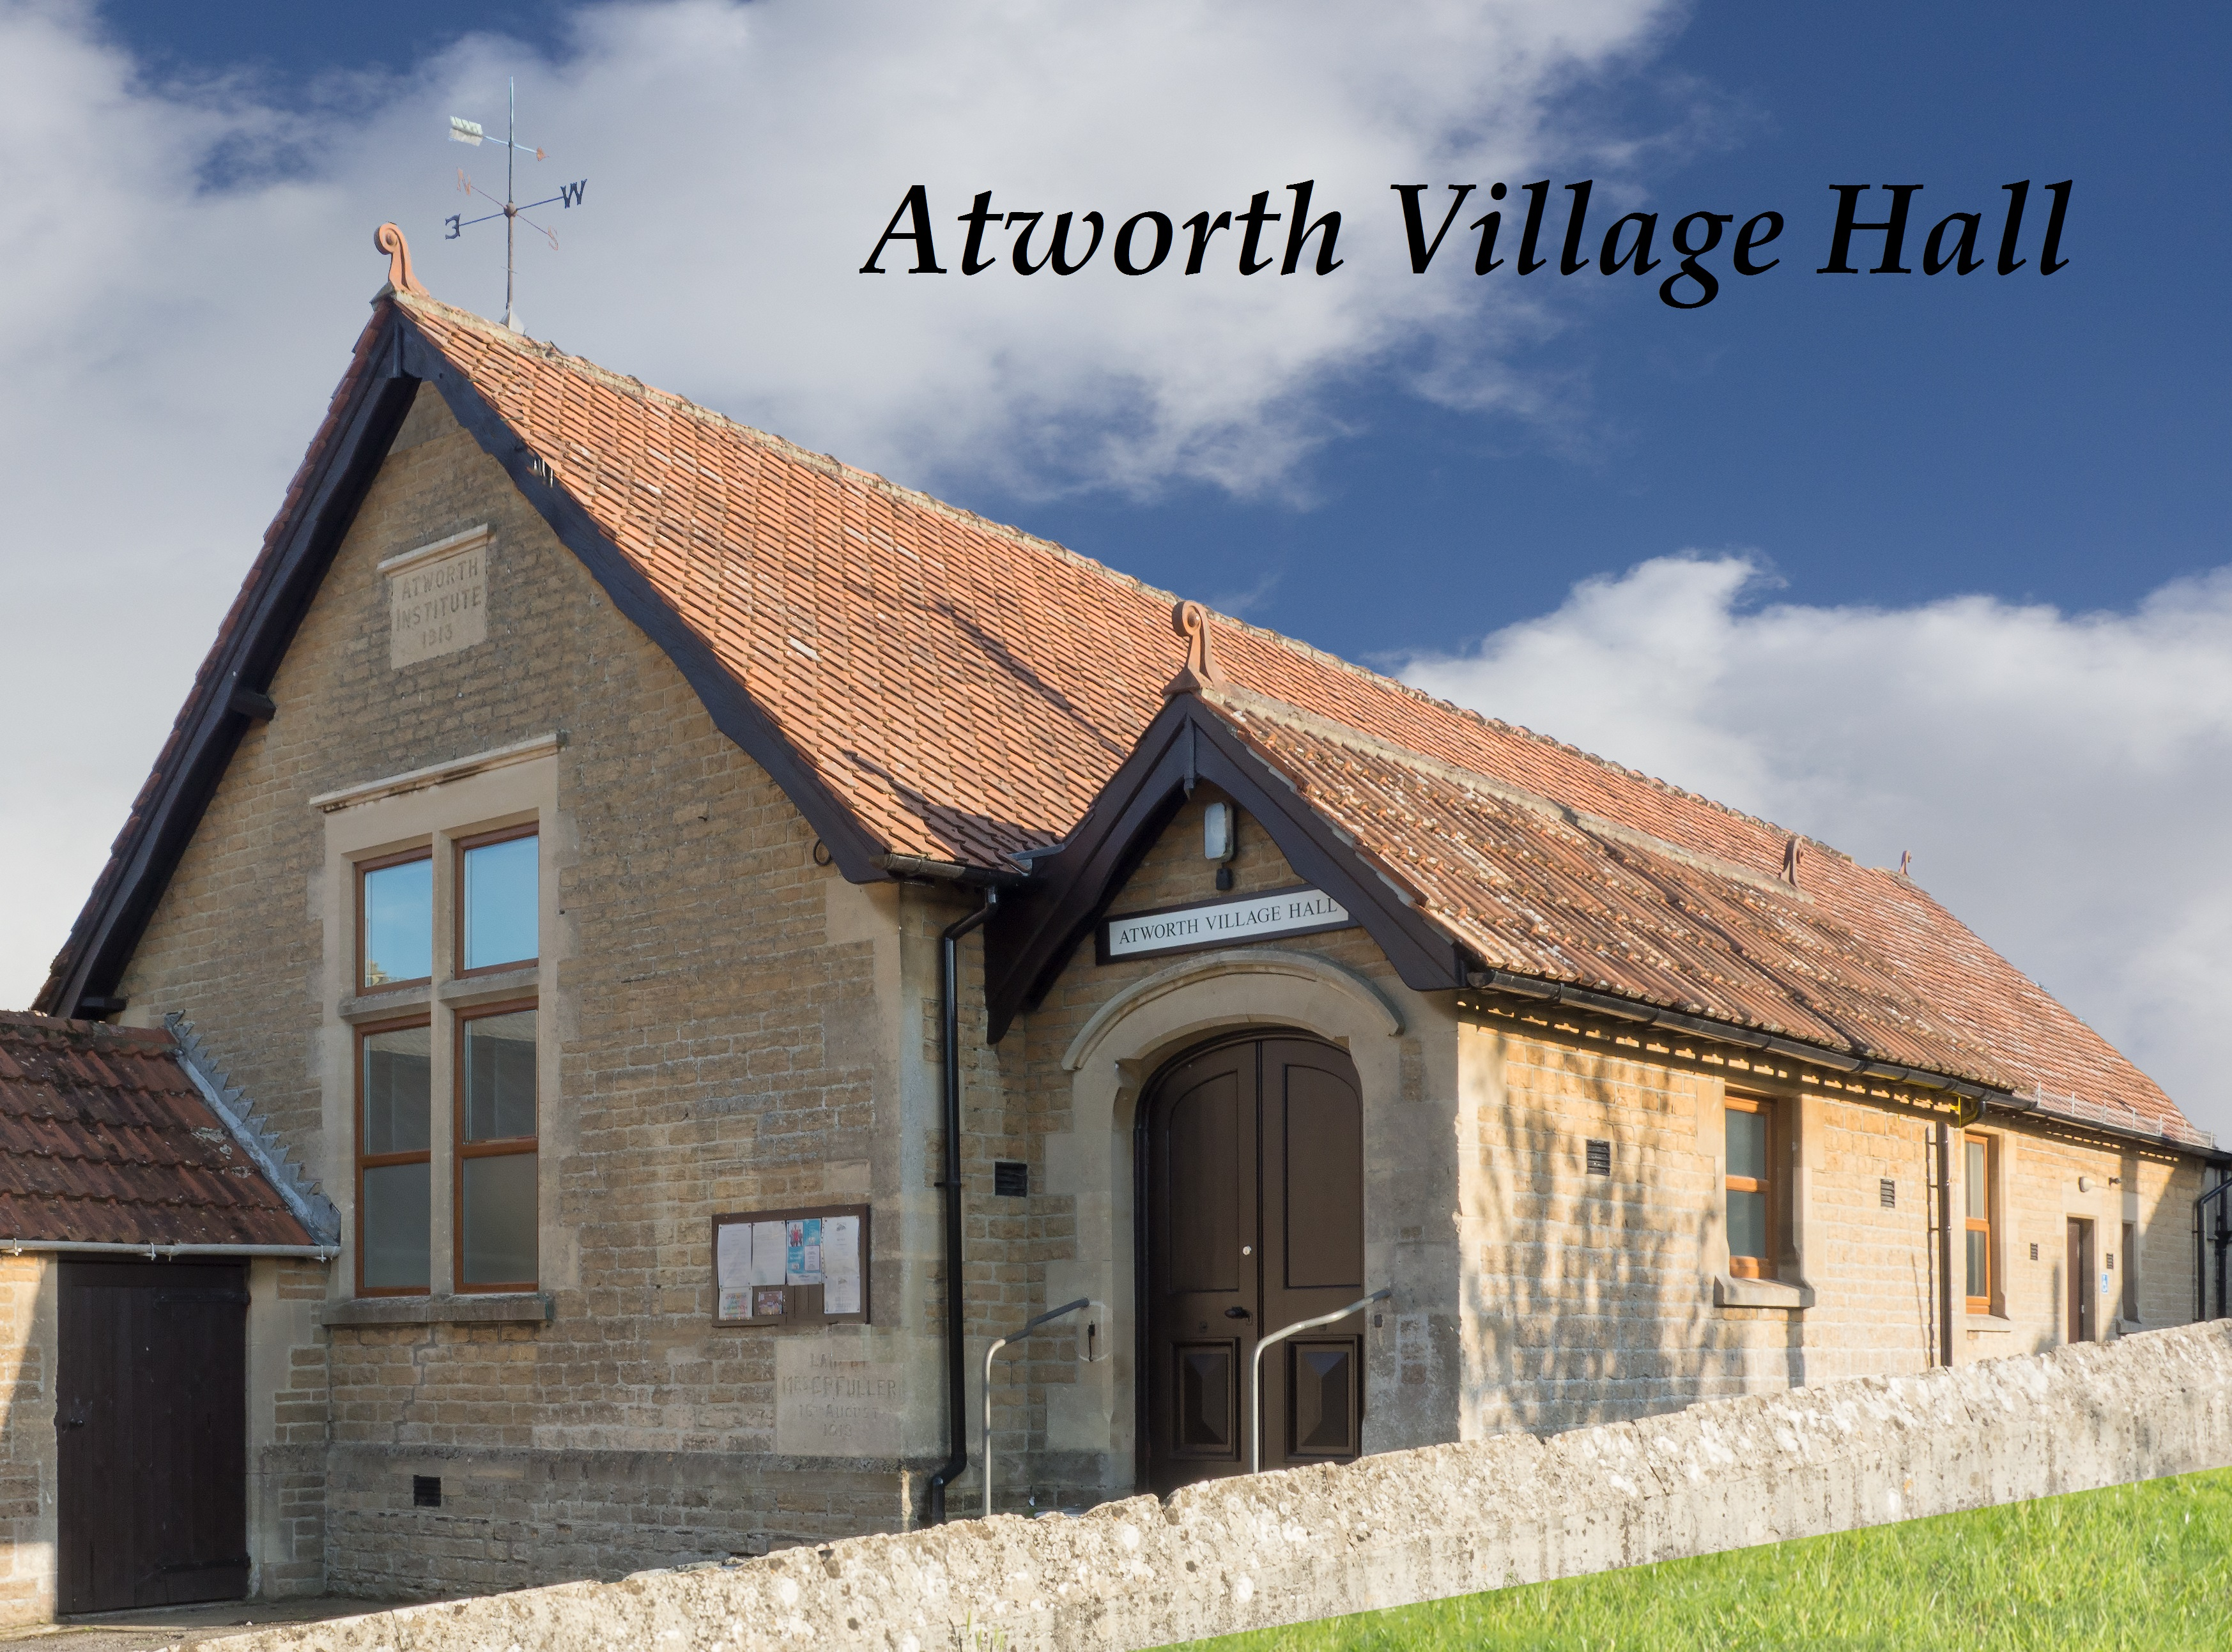 Atworth Village Hall